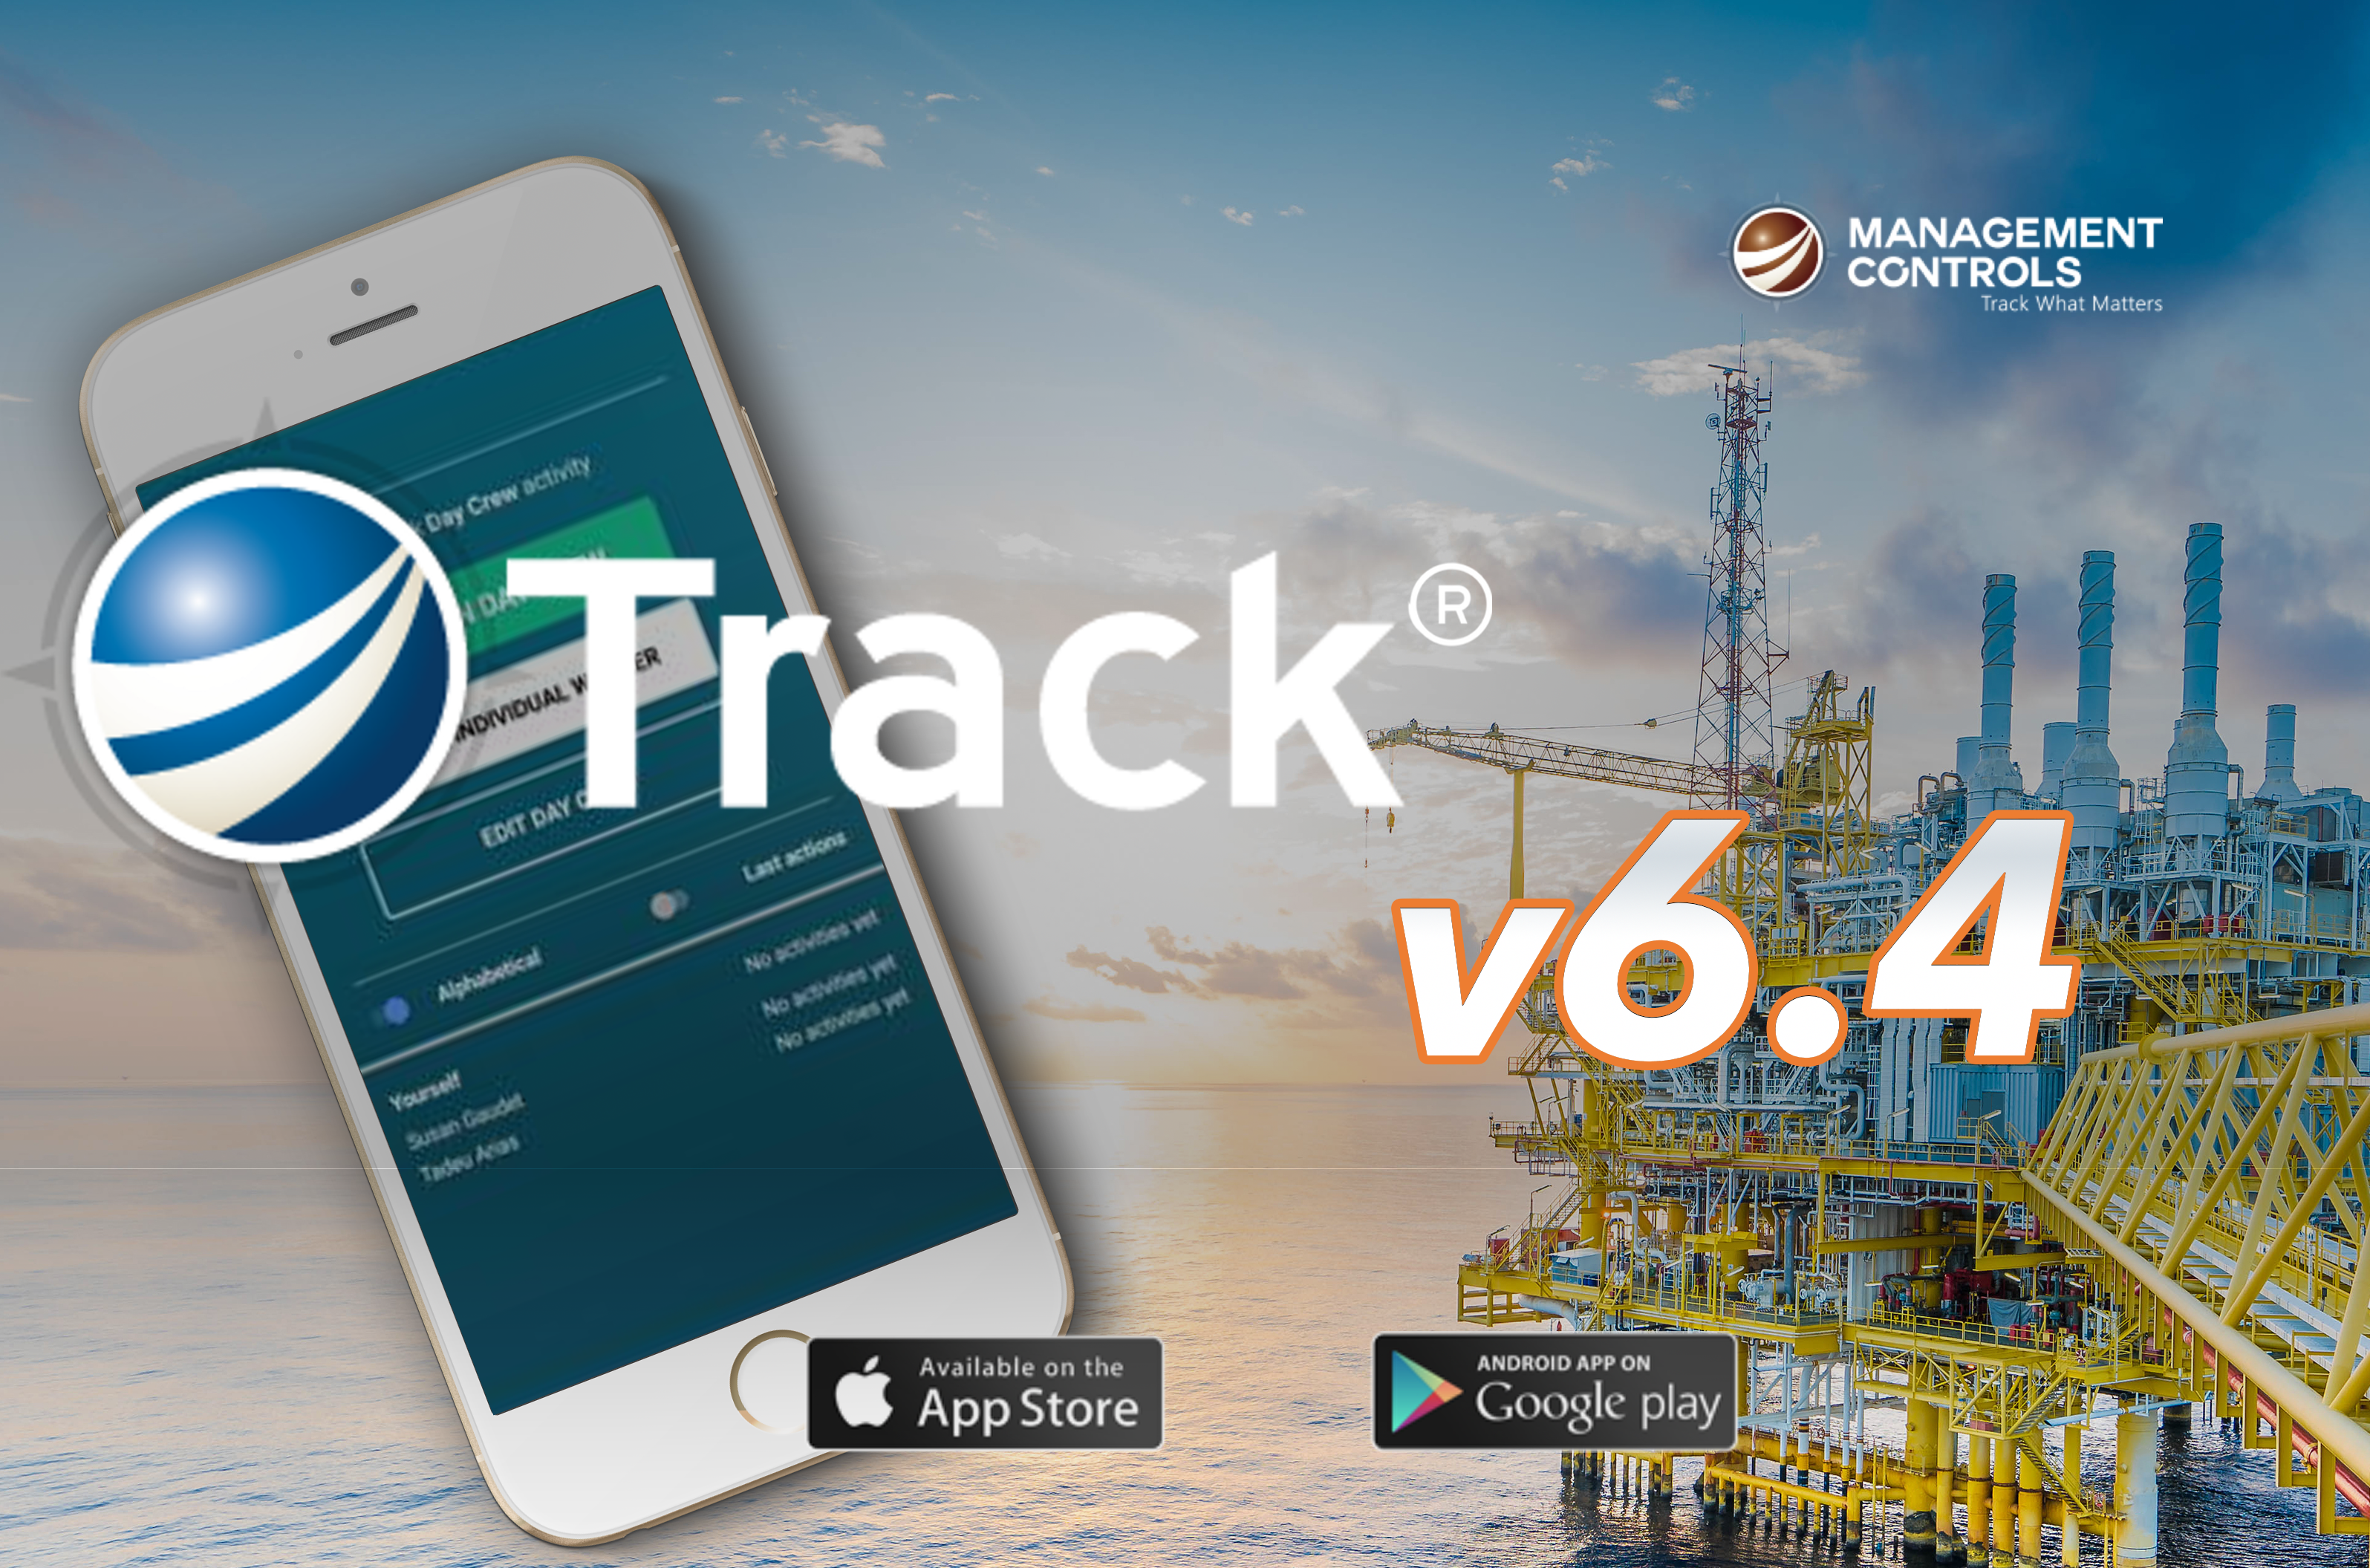 Management Controls, Inc. (MCi) Introduces Mobility and Enhanced User Functionality with Track® v6.4